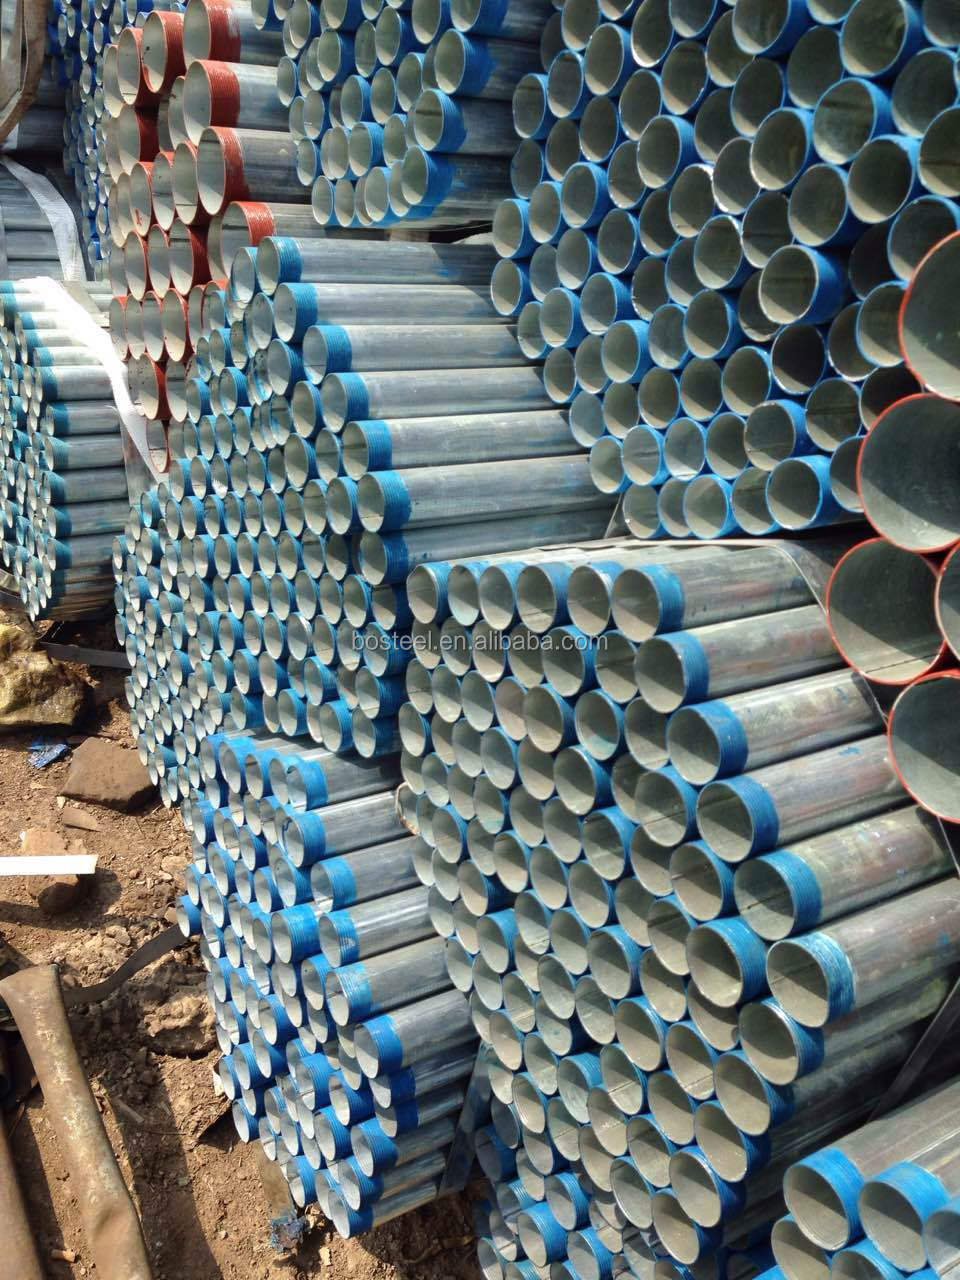 Non Galvanized Conduit, Non Galvanized Conduit Suppliers and ...